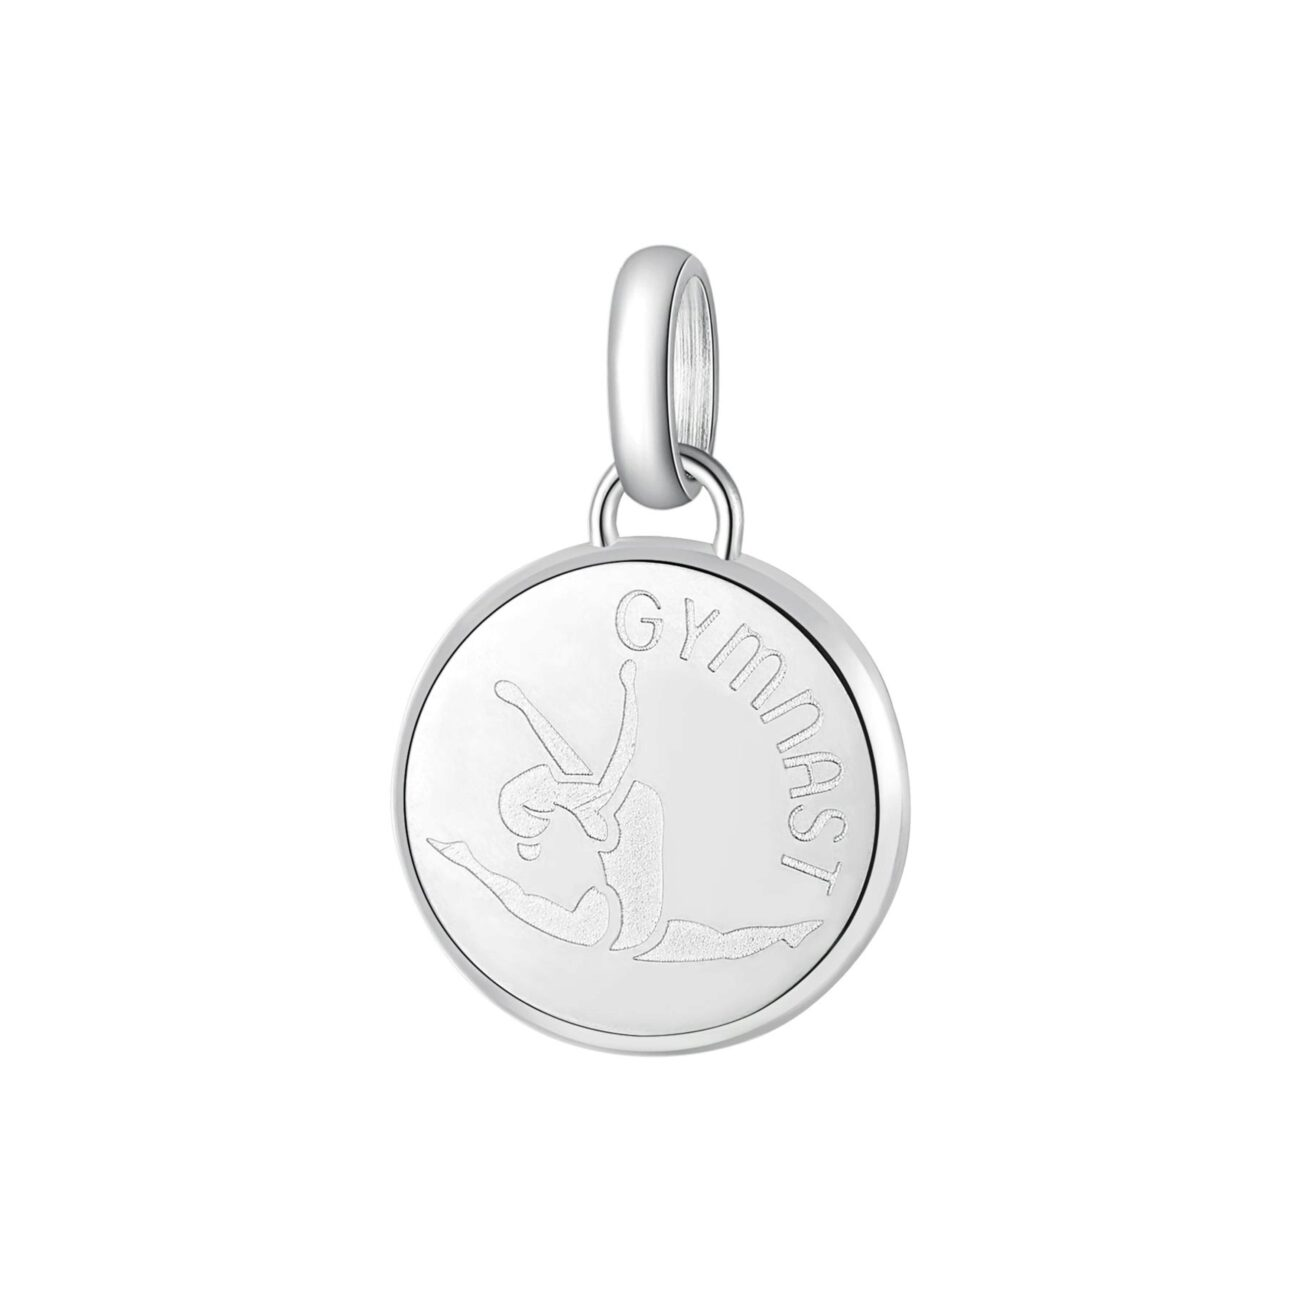 ENGRAVING: Gymnast (front)316L stainless steel beads with gymnast and engraving.